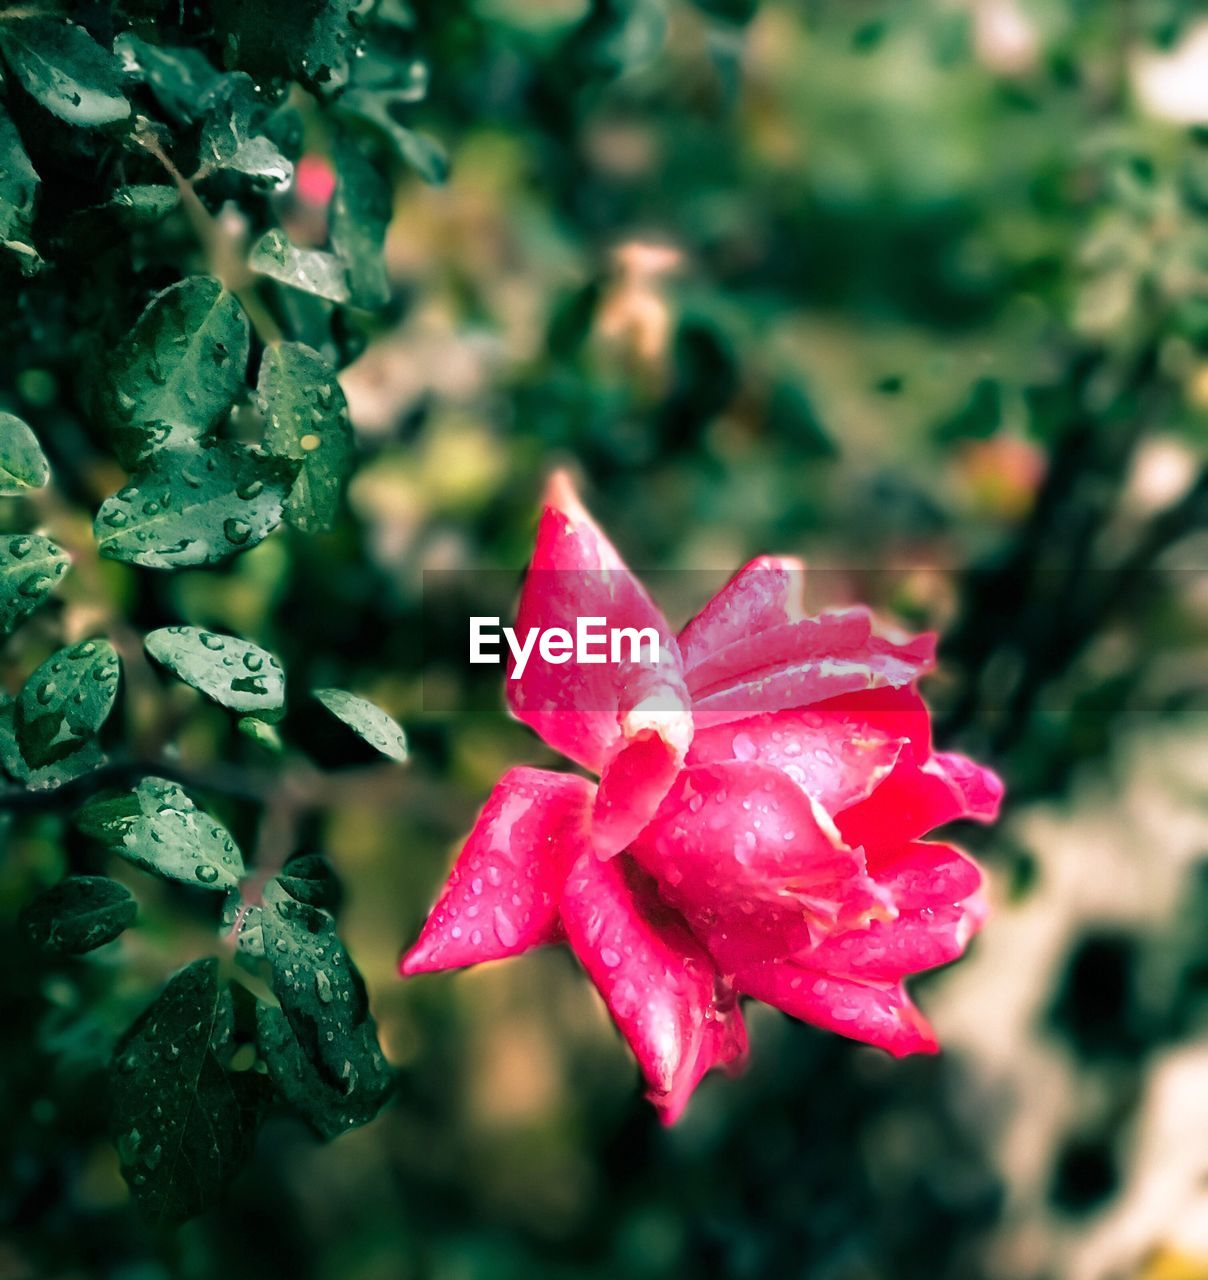 flower, growth, petal, nature, beauty in nature, fragility, drop, red, wet, flower head, freshness, rose - flower, no people, focus on foreground, plant, close-up, day, pink color, outdoors, blooming, water